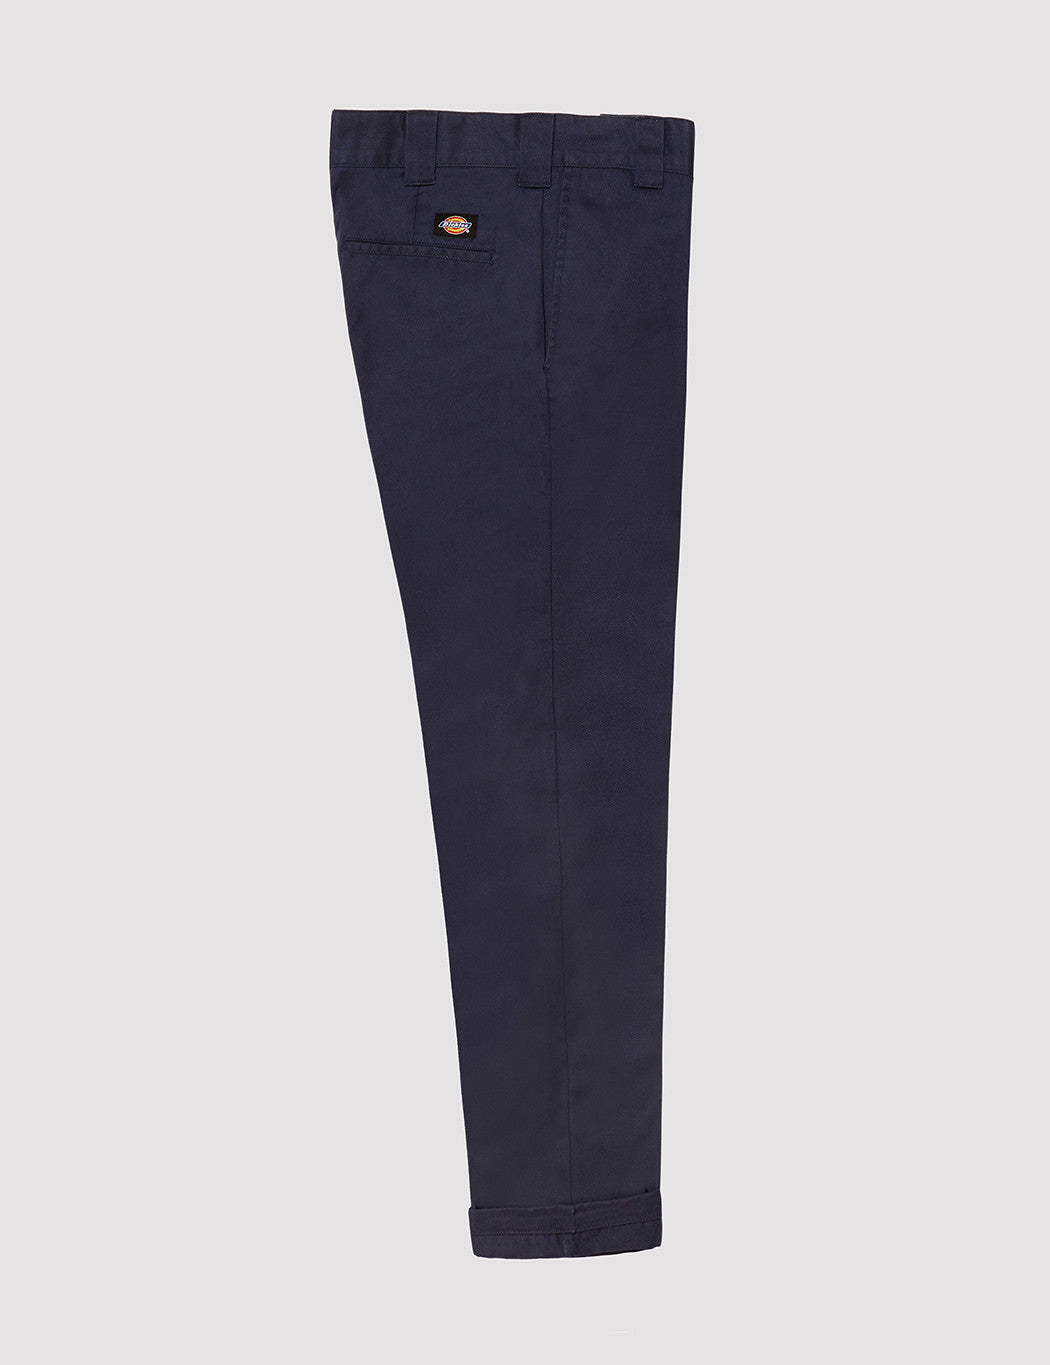 Dickies 872 Work Pants (Slim) - Dark Navy